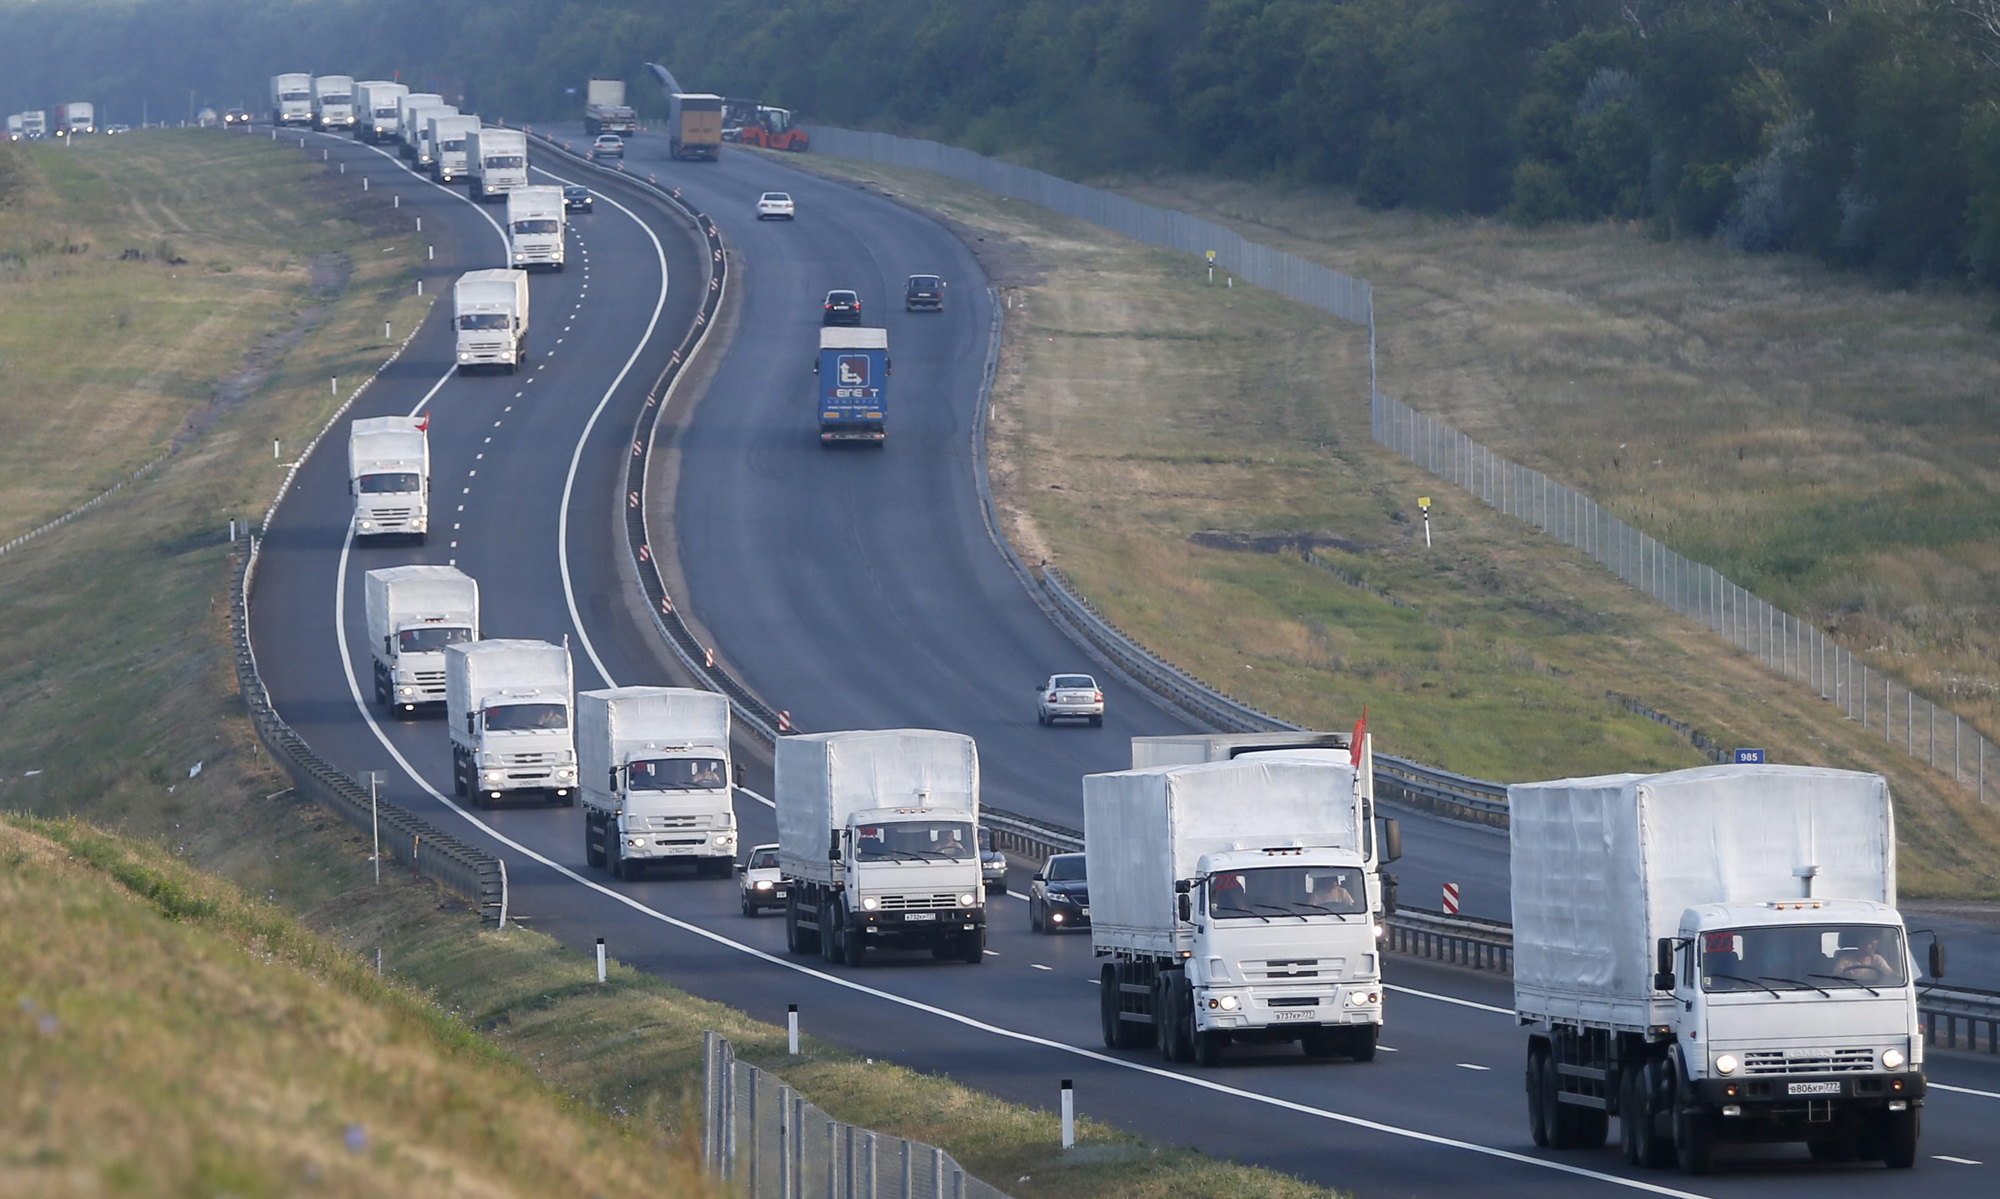 A Russian convoy carrying humanitarian aid for residents in rebel eastern Ukrainian regions moves along a road about 30 miles from Voronezh, Russia, Aug. 14, 2014.